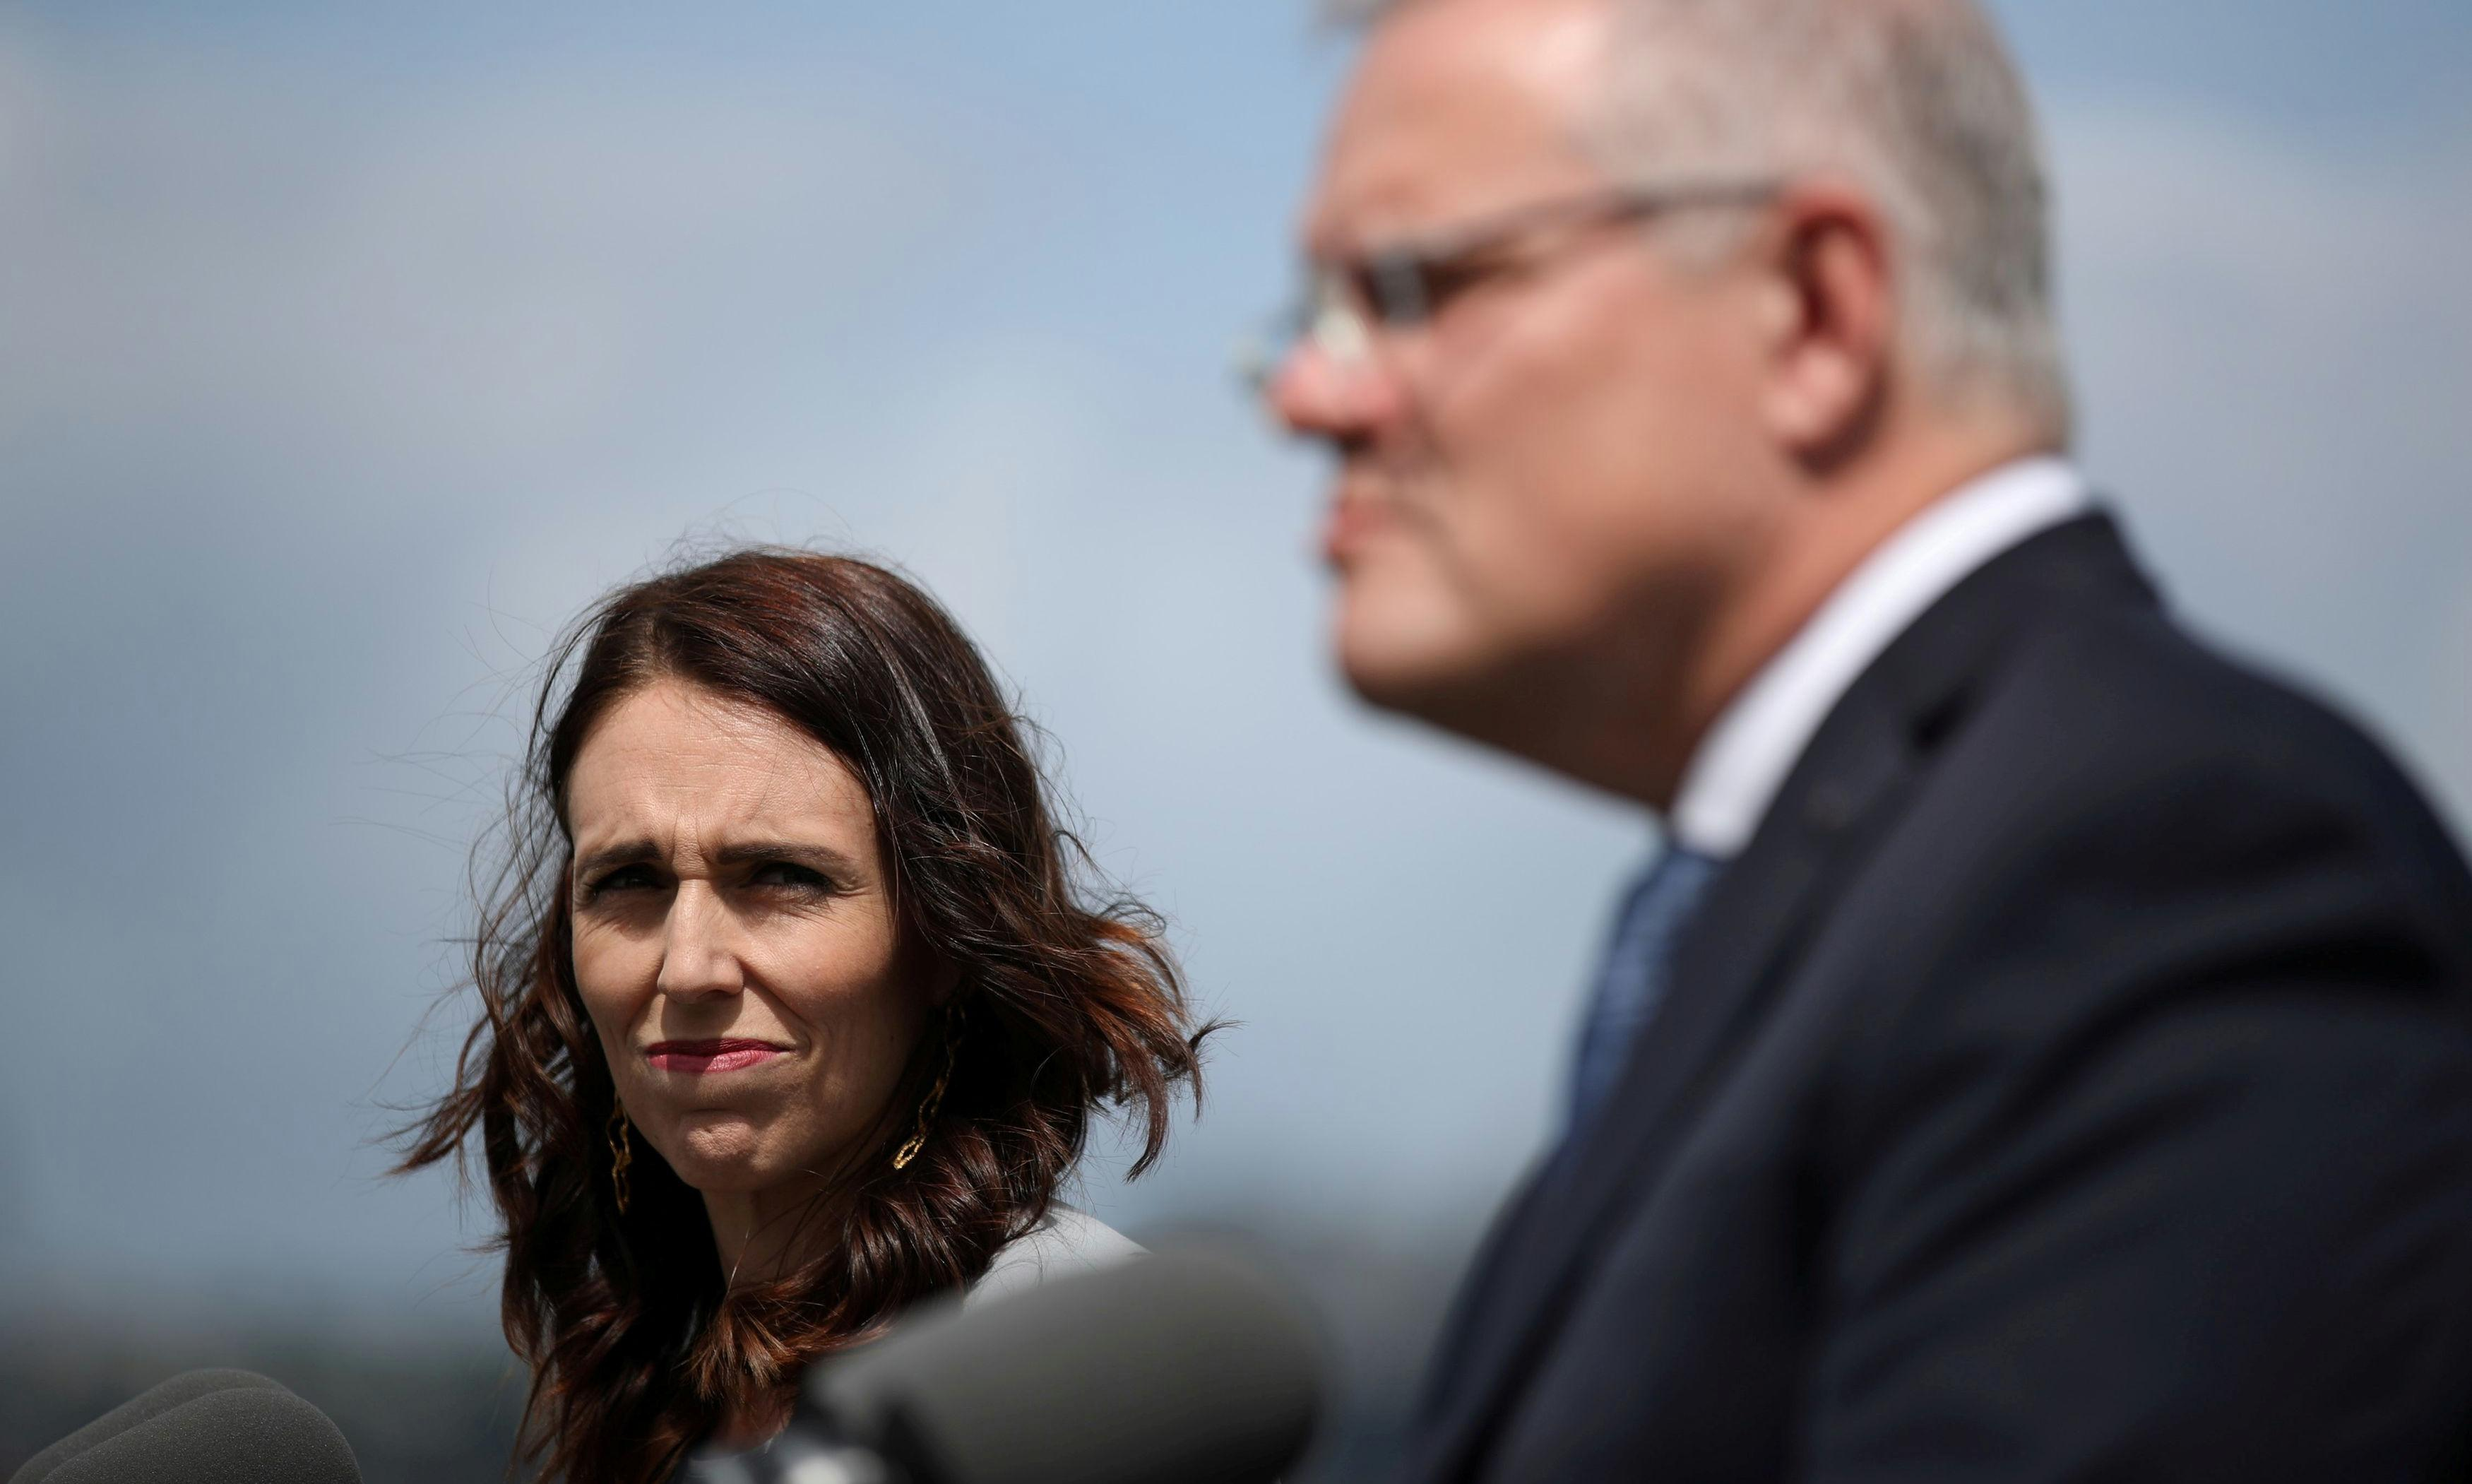 Not much love actually: Jacinda Ardern was right to call out Australia's 'corrosive' policies